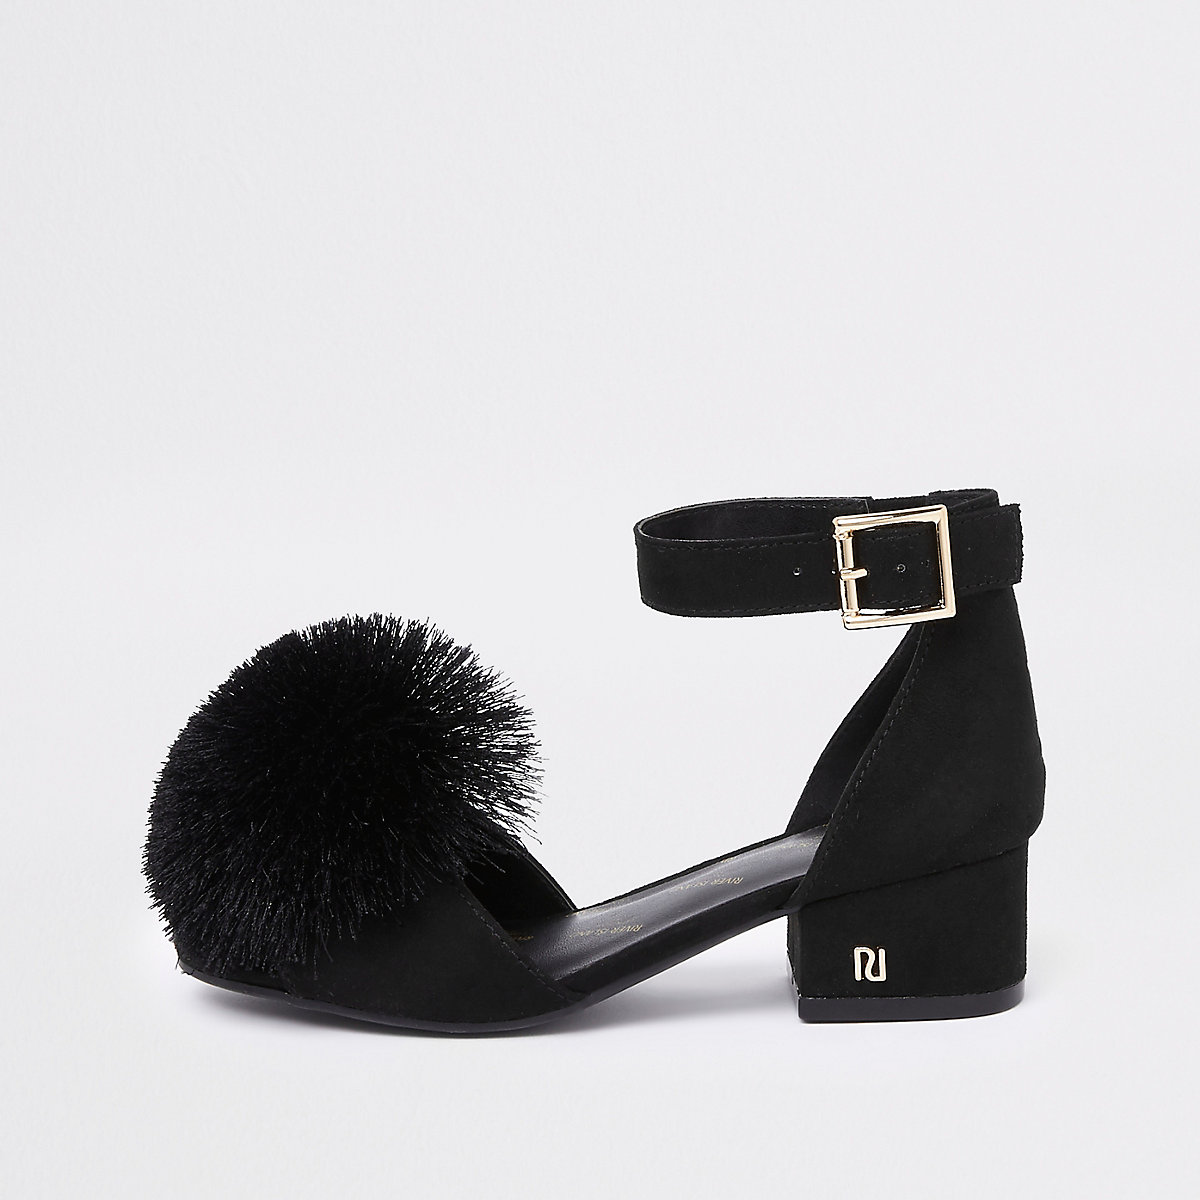 Girls black pom pom block heel sandals